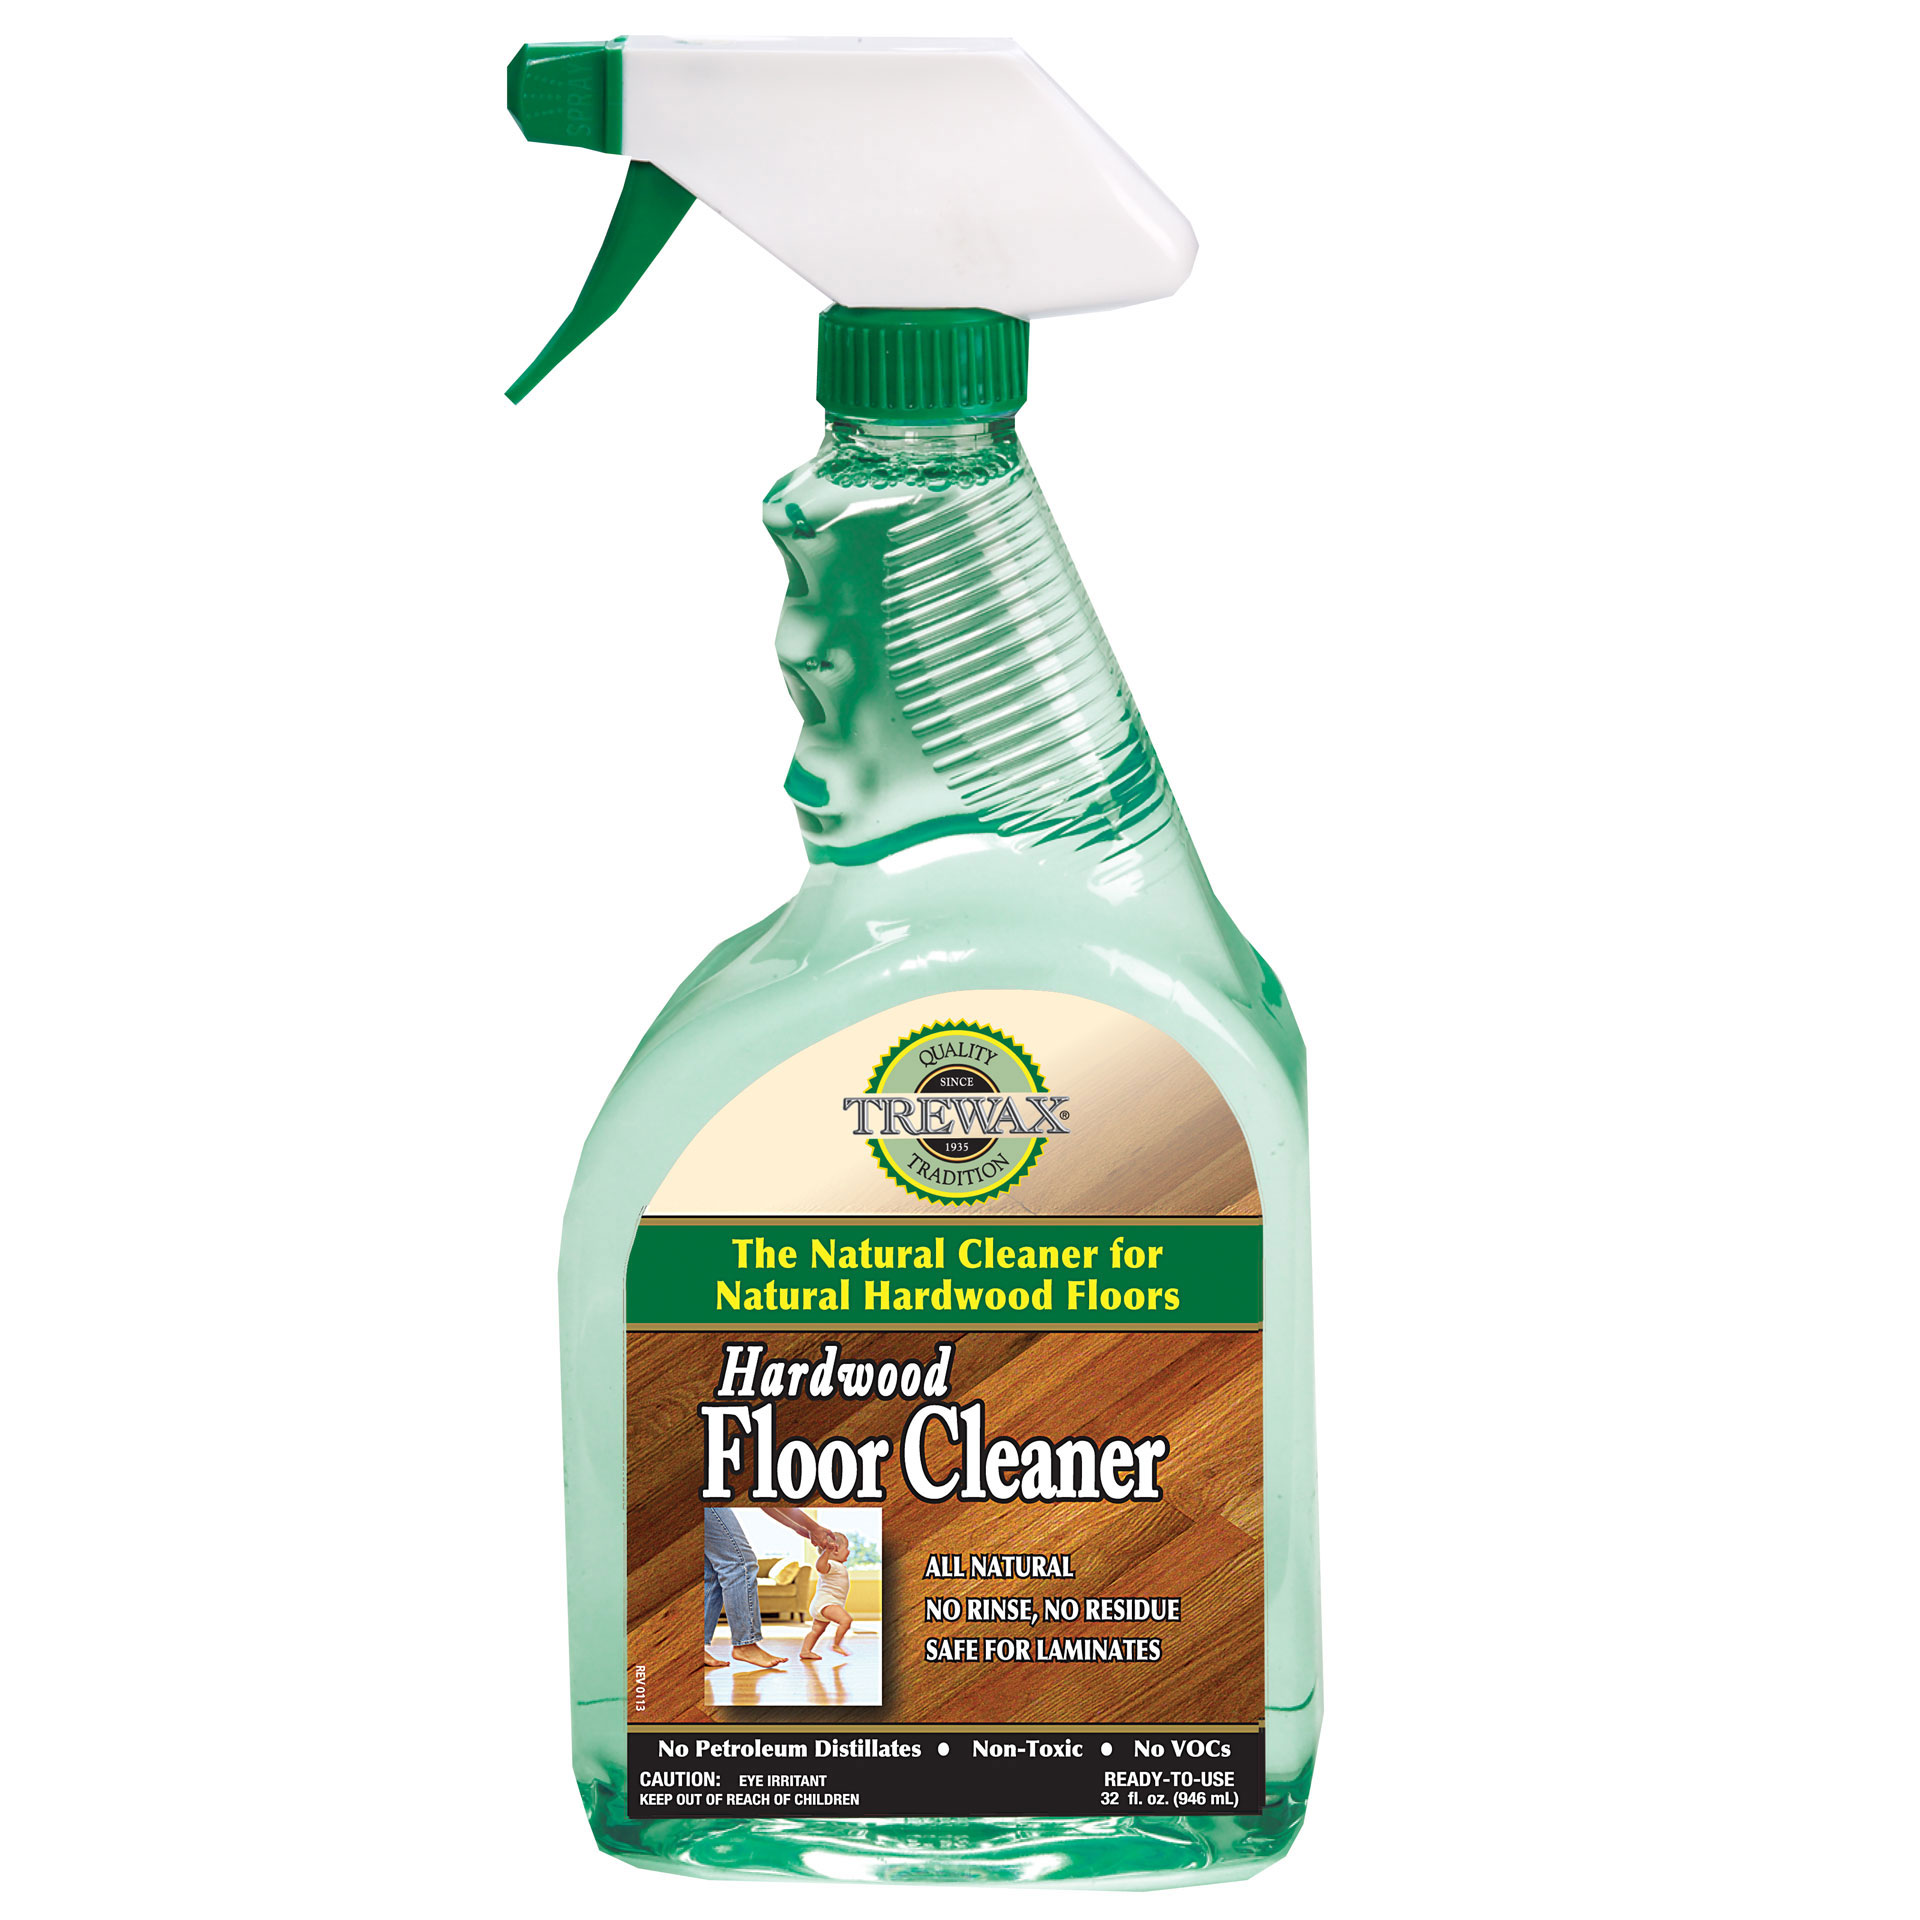 Trewax hardwood floor cleaner review for Hardwood floor cleaner